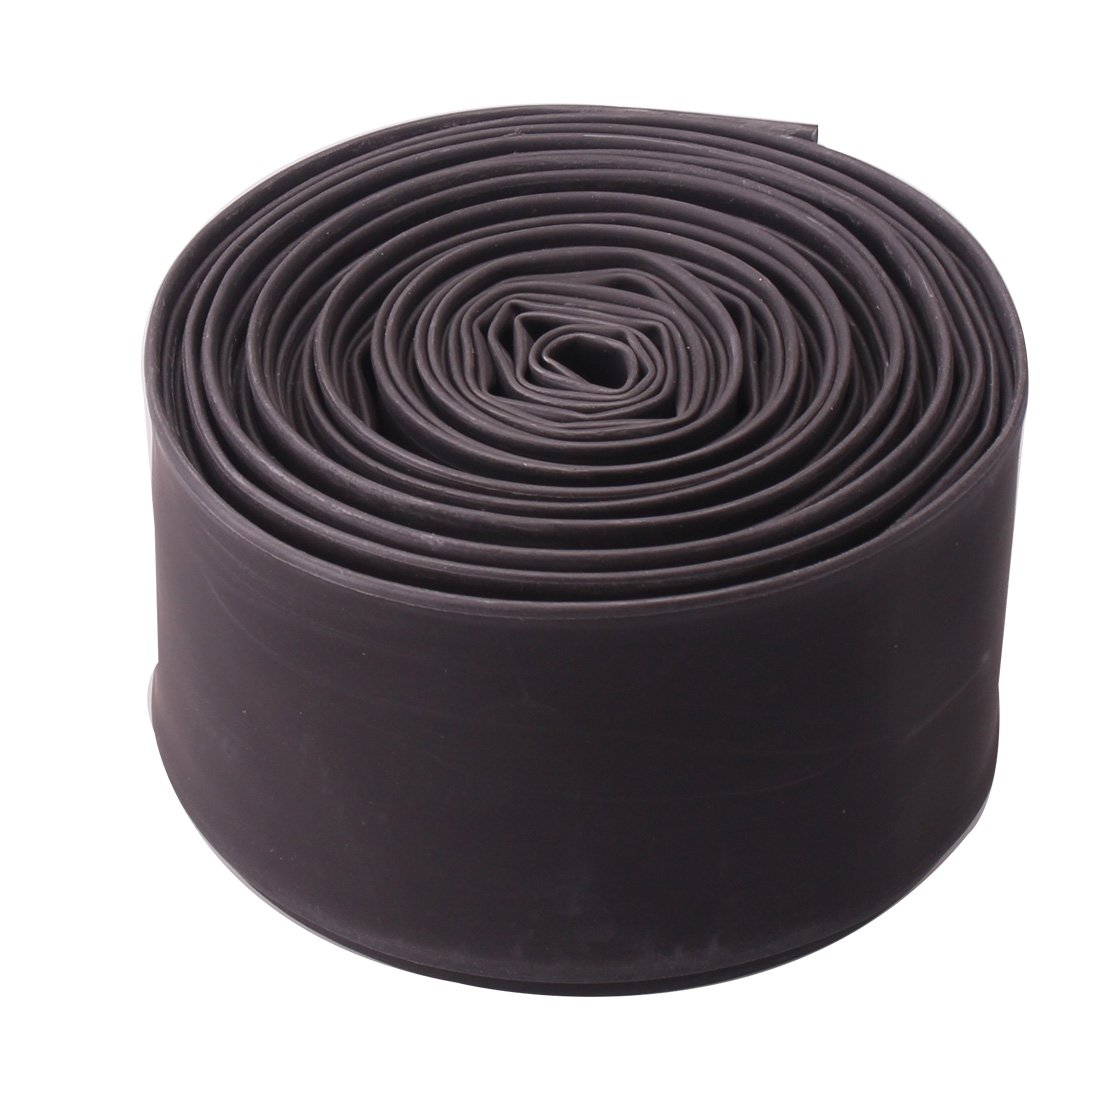 6M // 20Ft, Dia.10mm Heat Shrink Tube Wire Wrap Electrical Cable Ratio 2:1 Heat Shrinkable Shrinking Sleeving Black